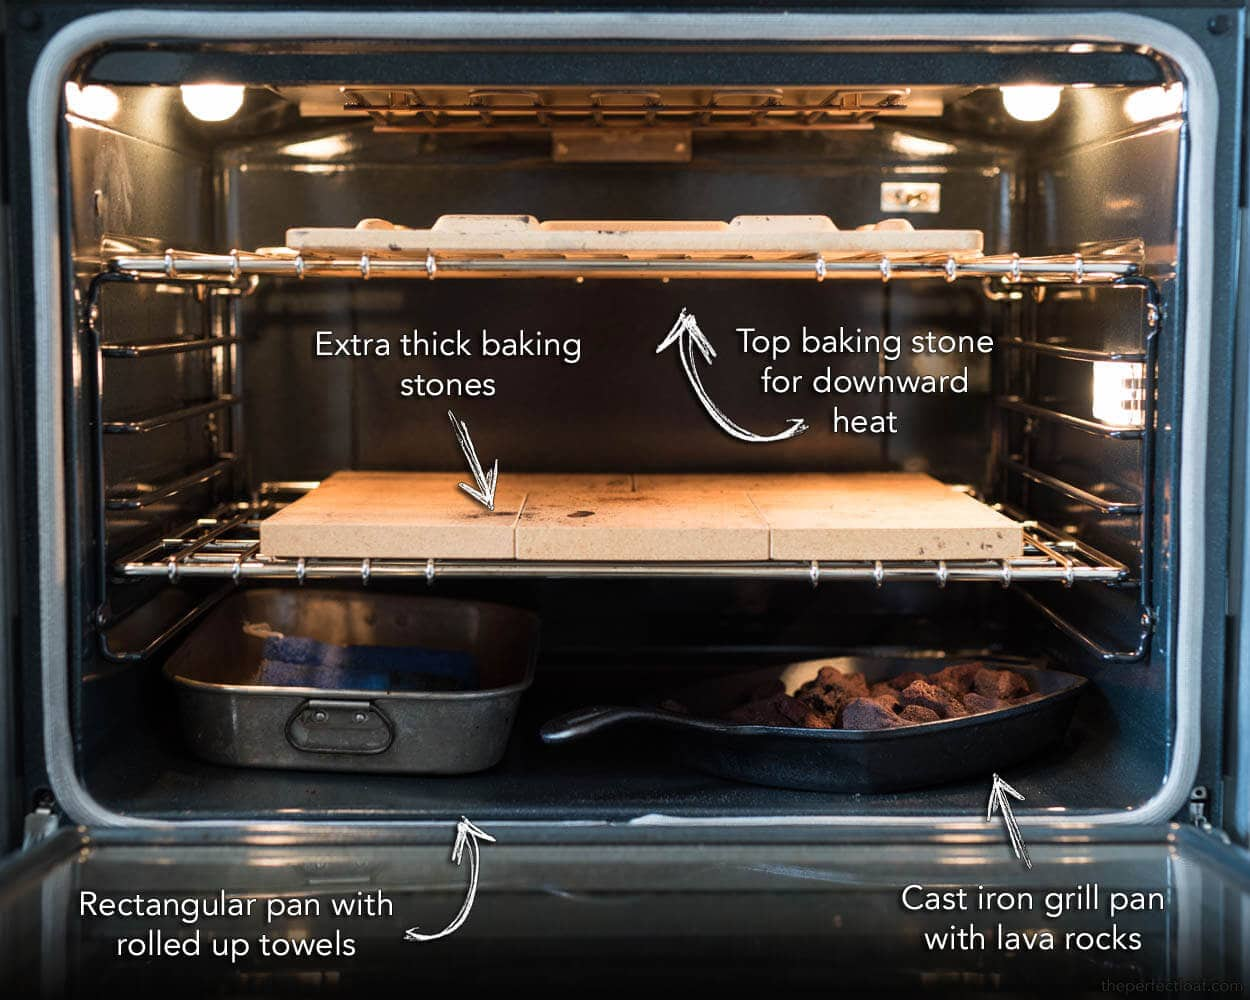 Diagram showing baking with steam tools